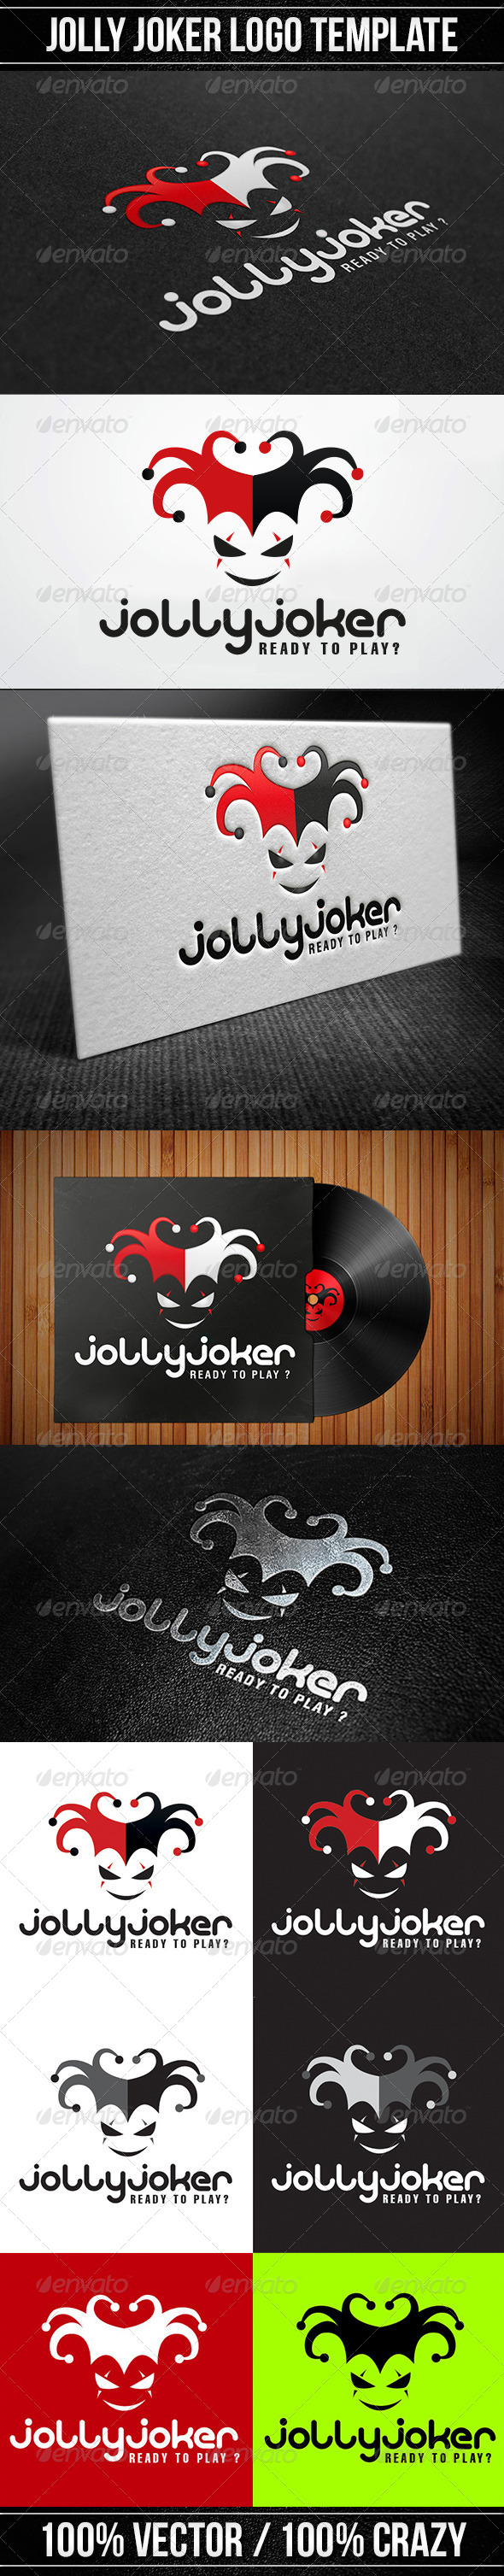 Jolly Joker Logo - Logo Templates